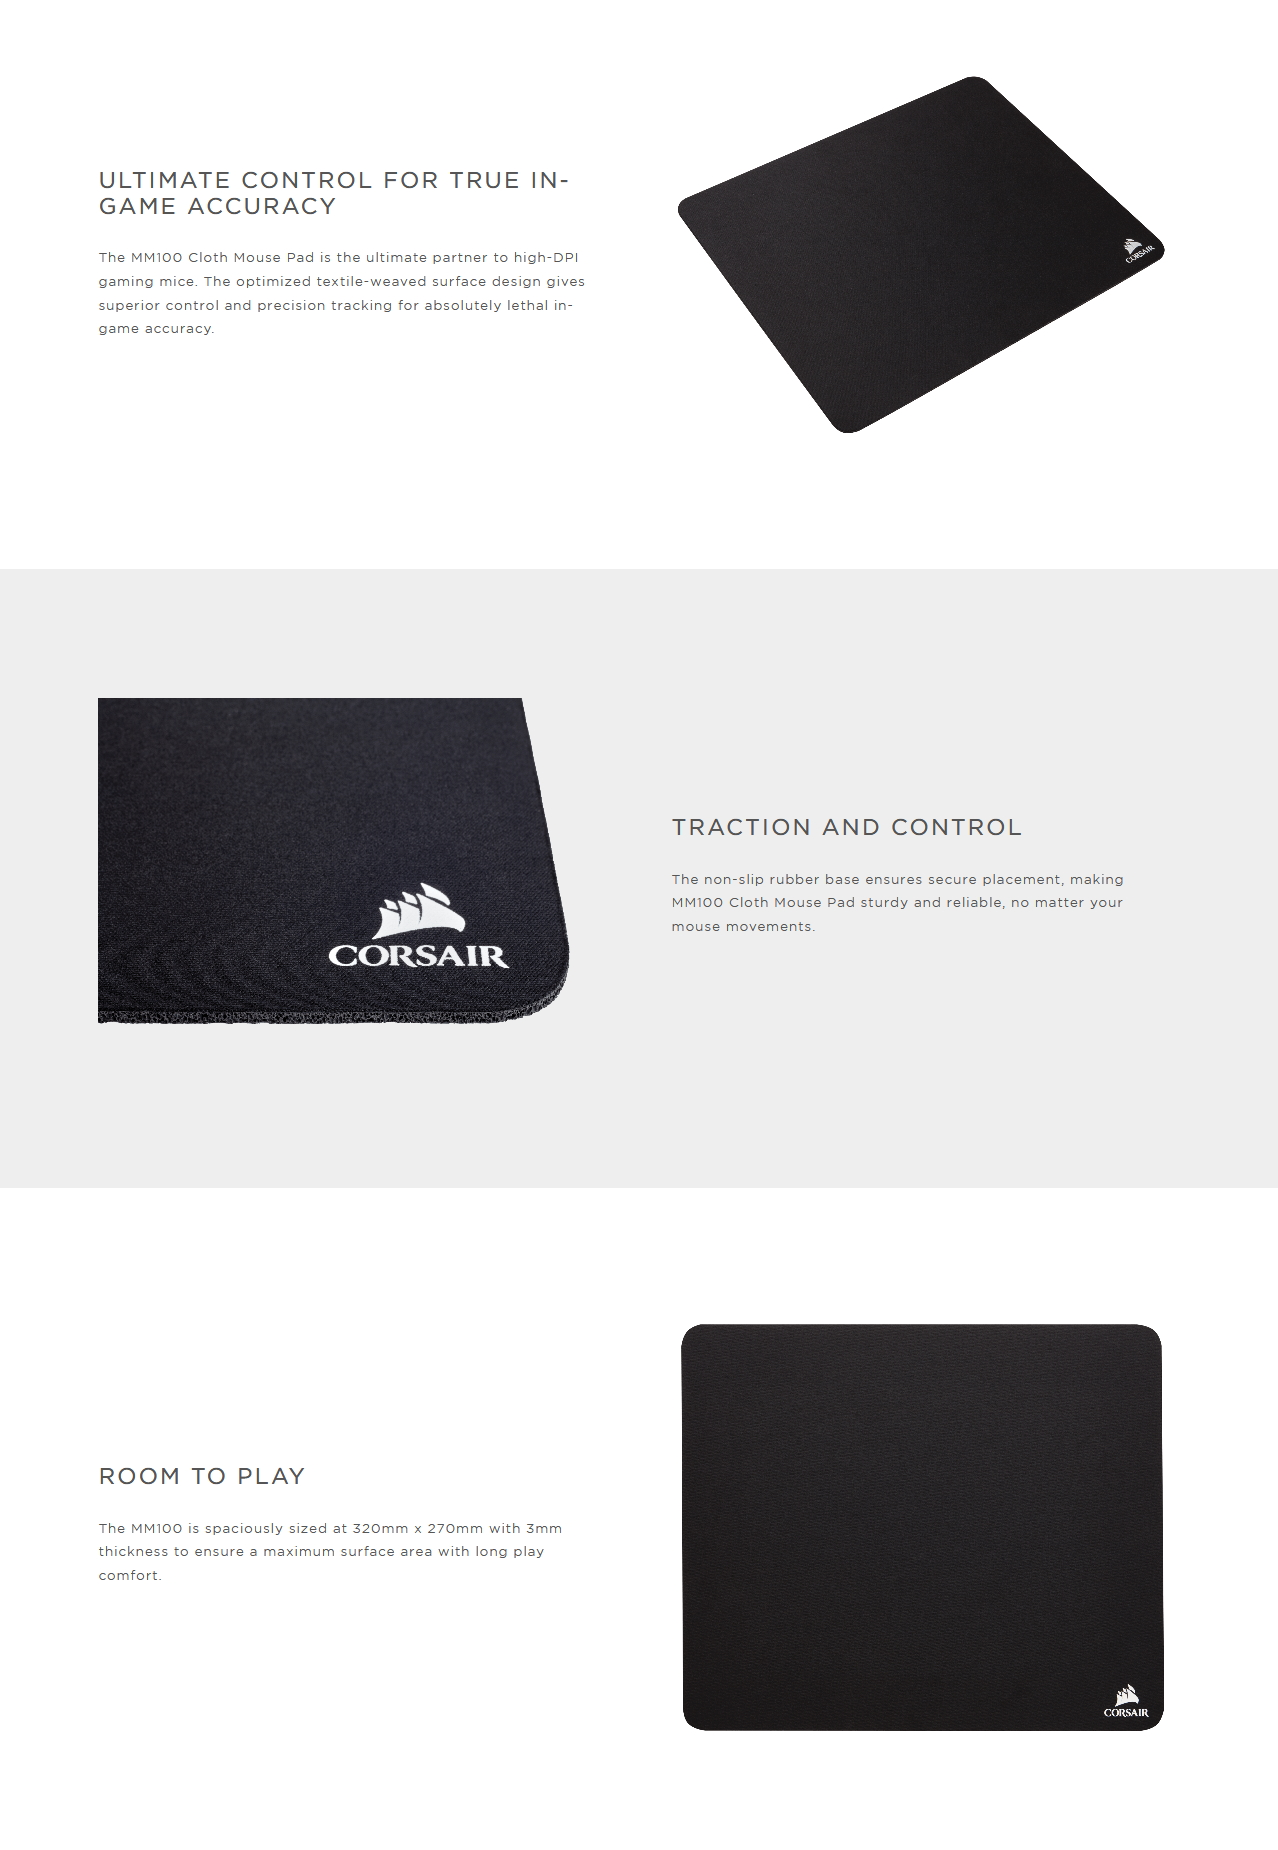 A large marketing image providing additional information about the product Corsair MM100 Cloth Gaming Mouse Mat - Medium - Additional alt info not provided